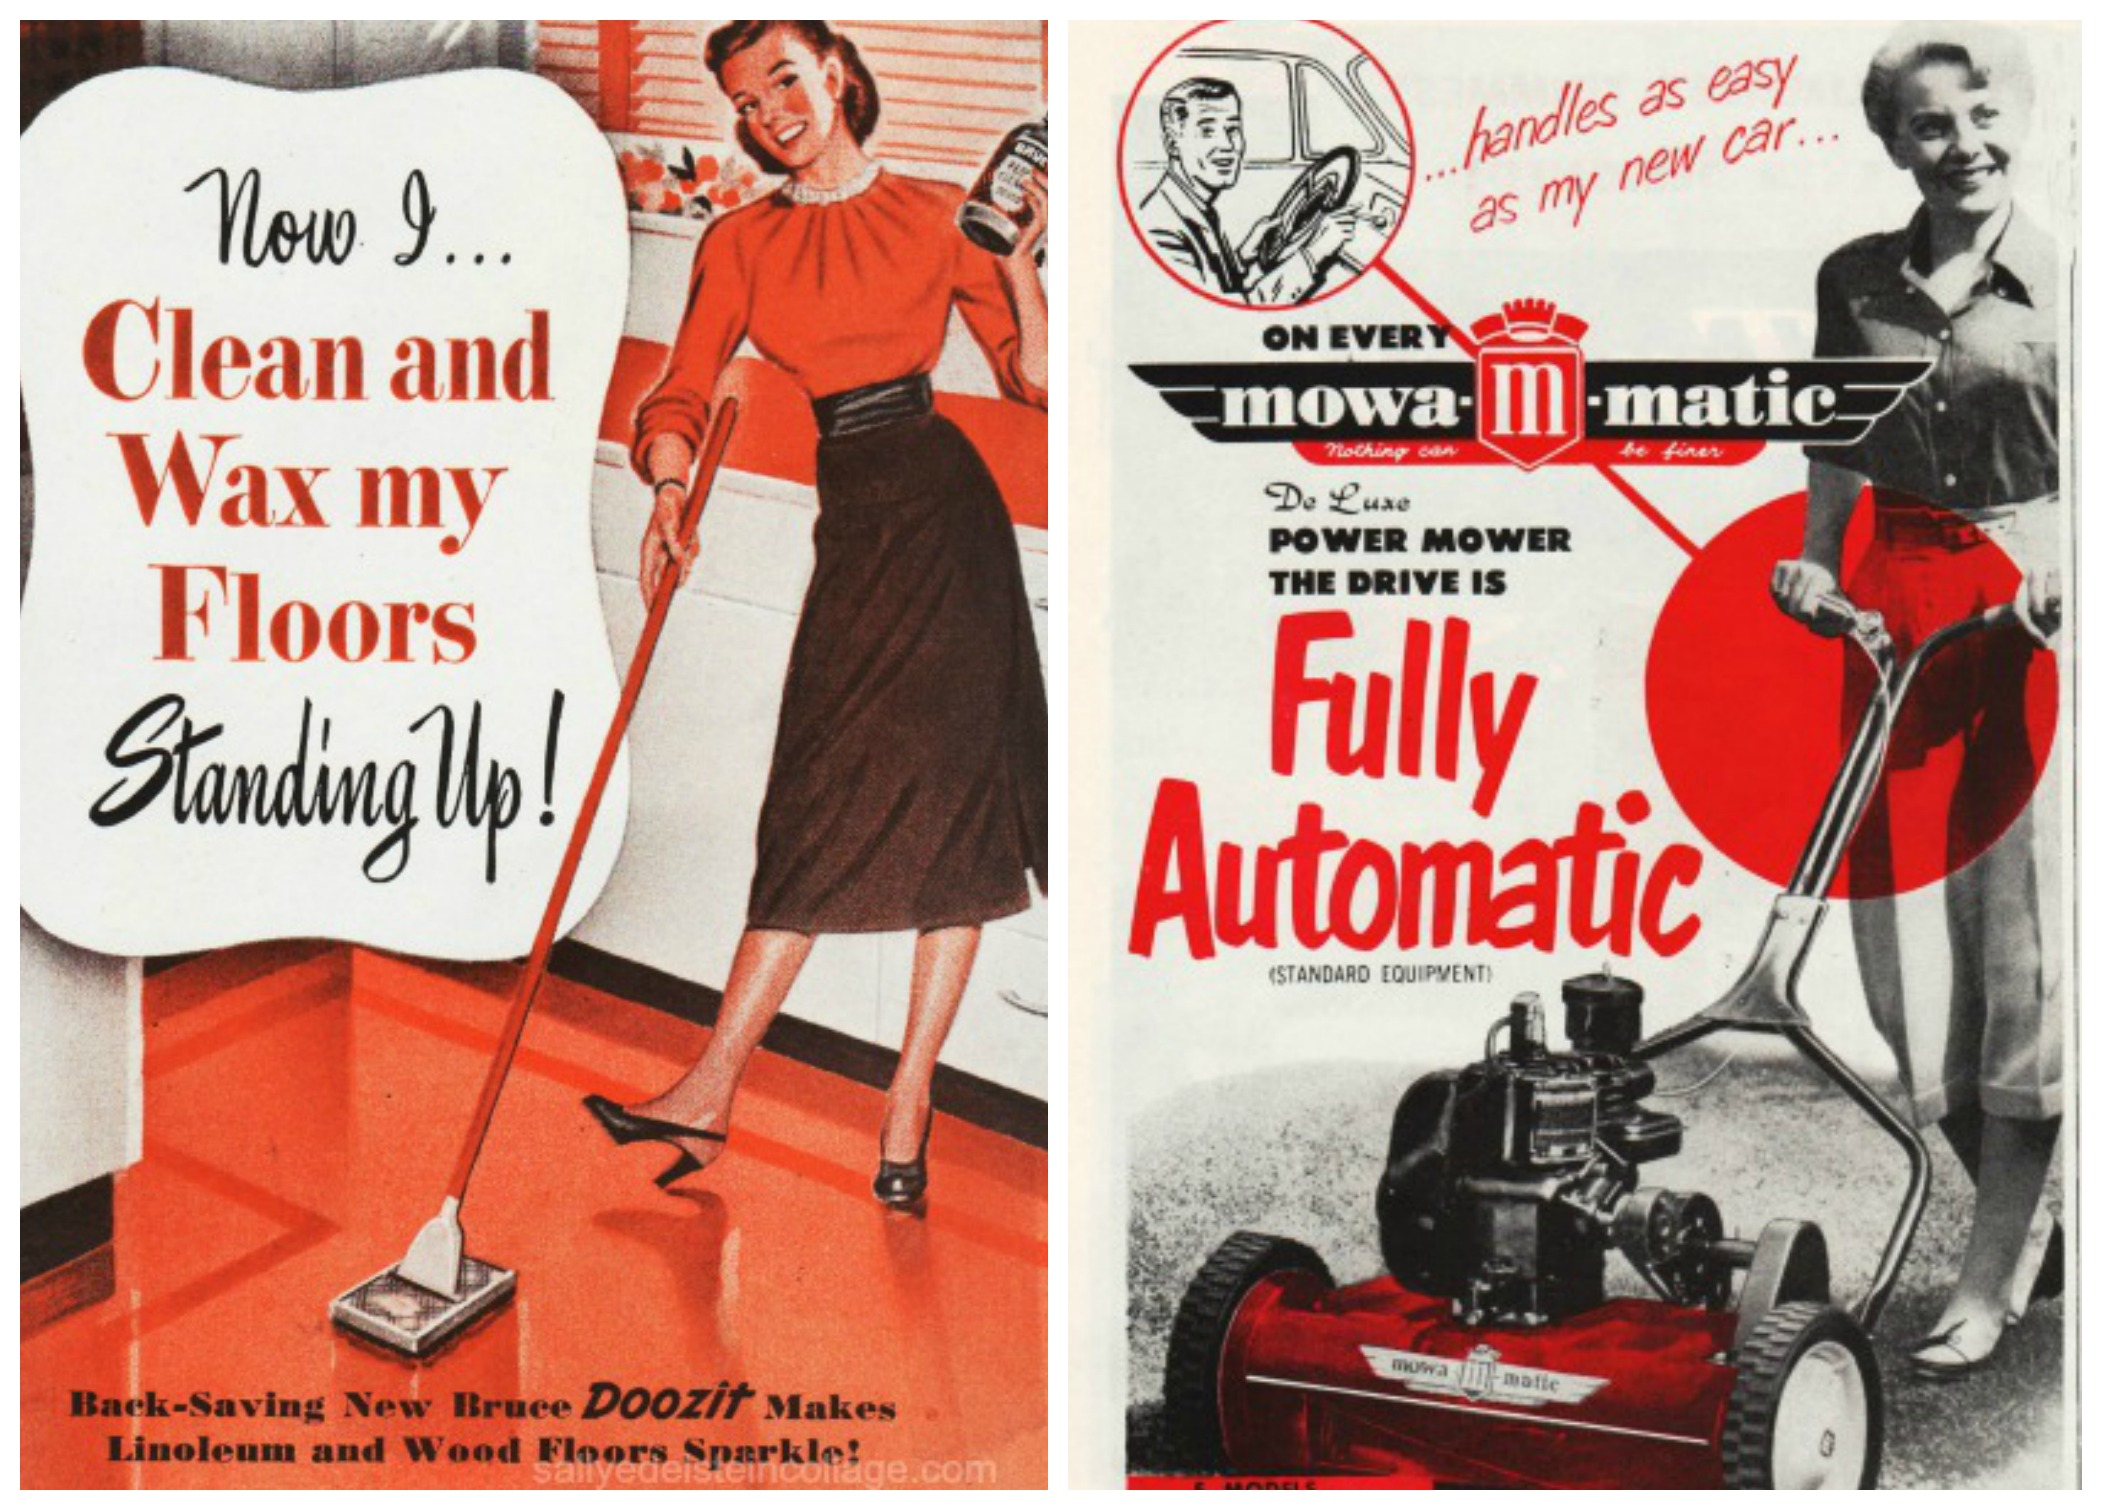 1950s car ads sexist